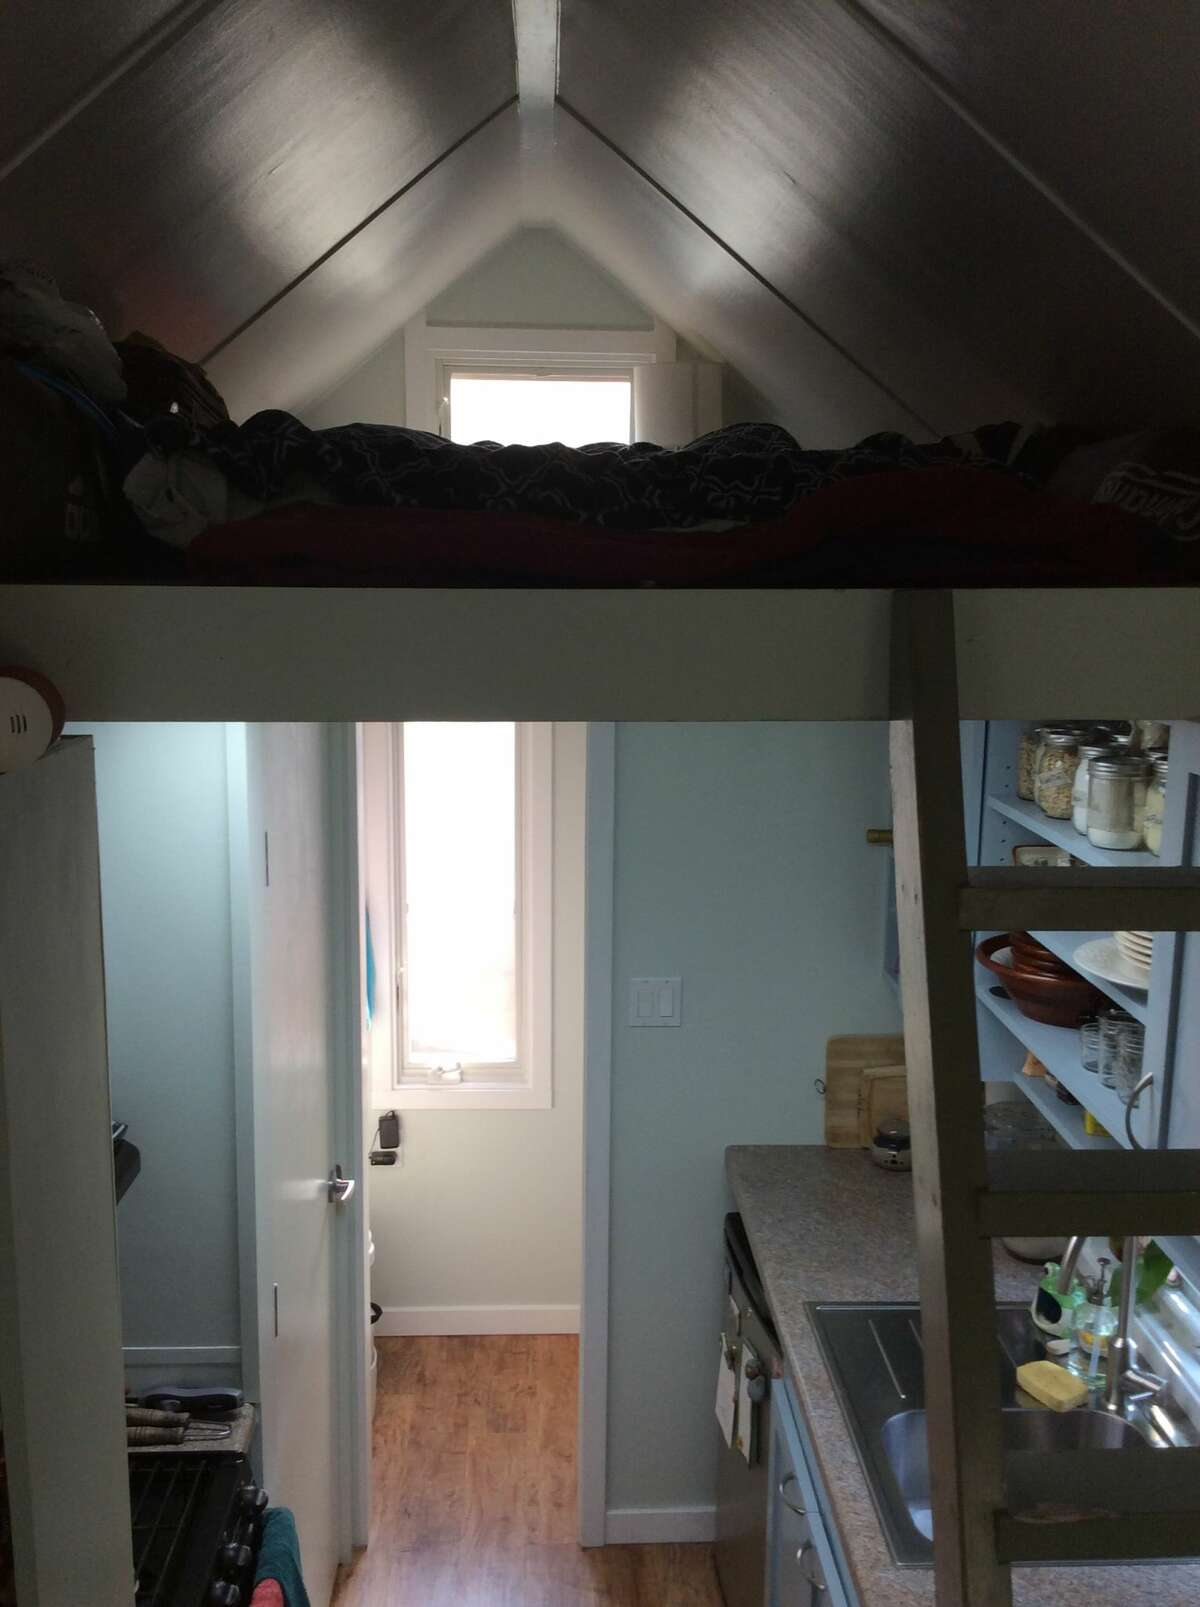 A view from higher up shows how small the sleeping area is. The clearance is about 30 inches at its highest point, according to Aileen Brown.